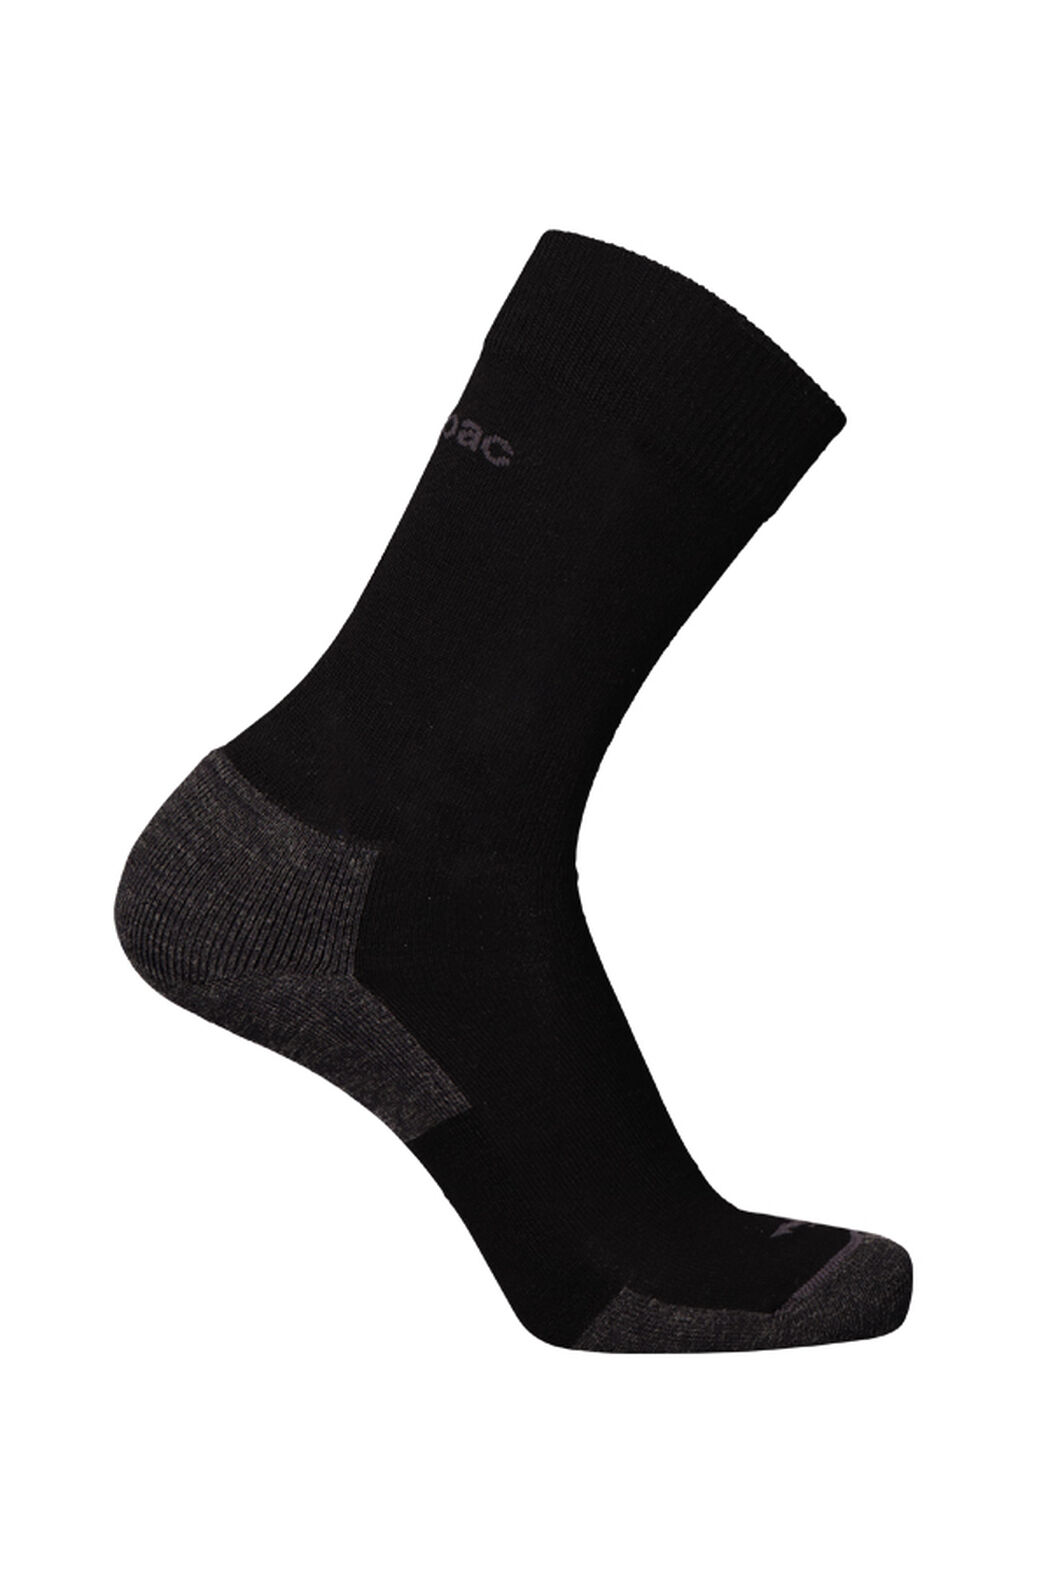 Macpac Merino Footprint Socks, Black, hi-res